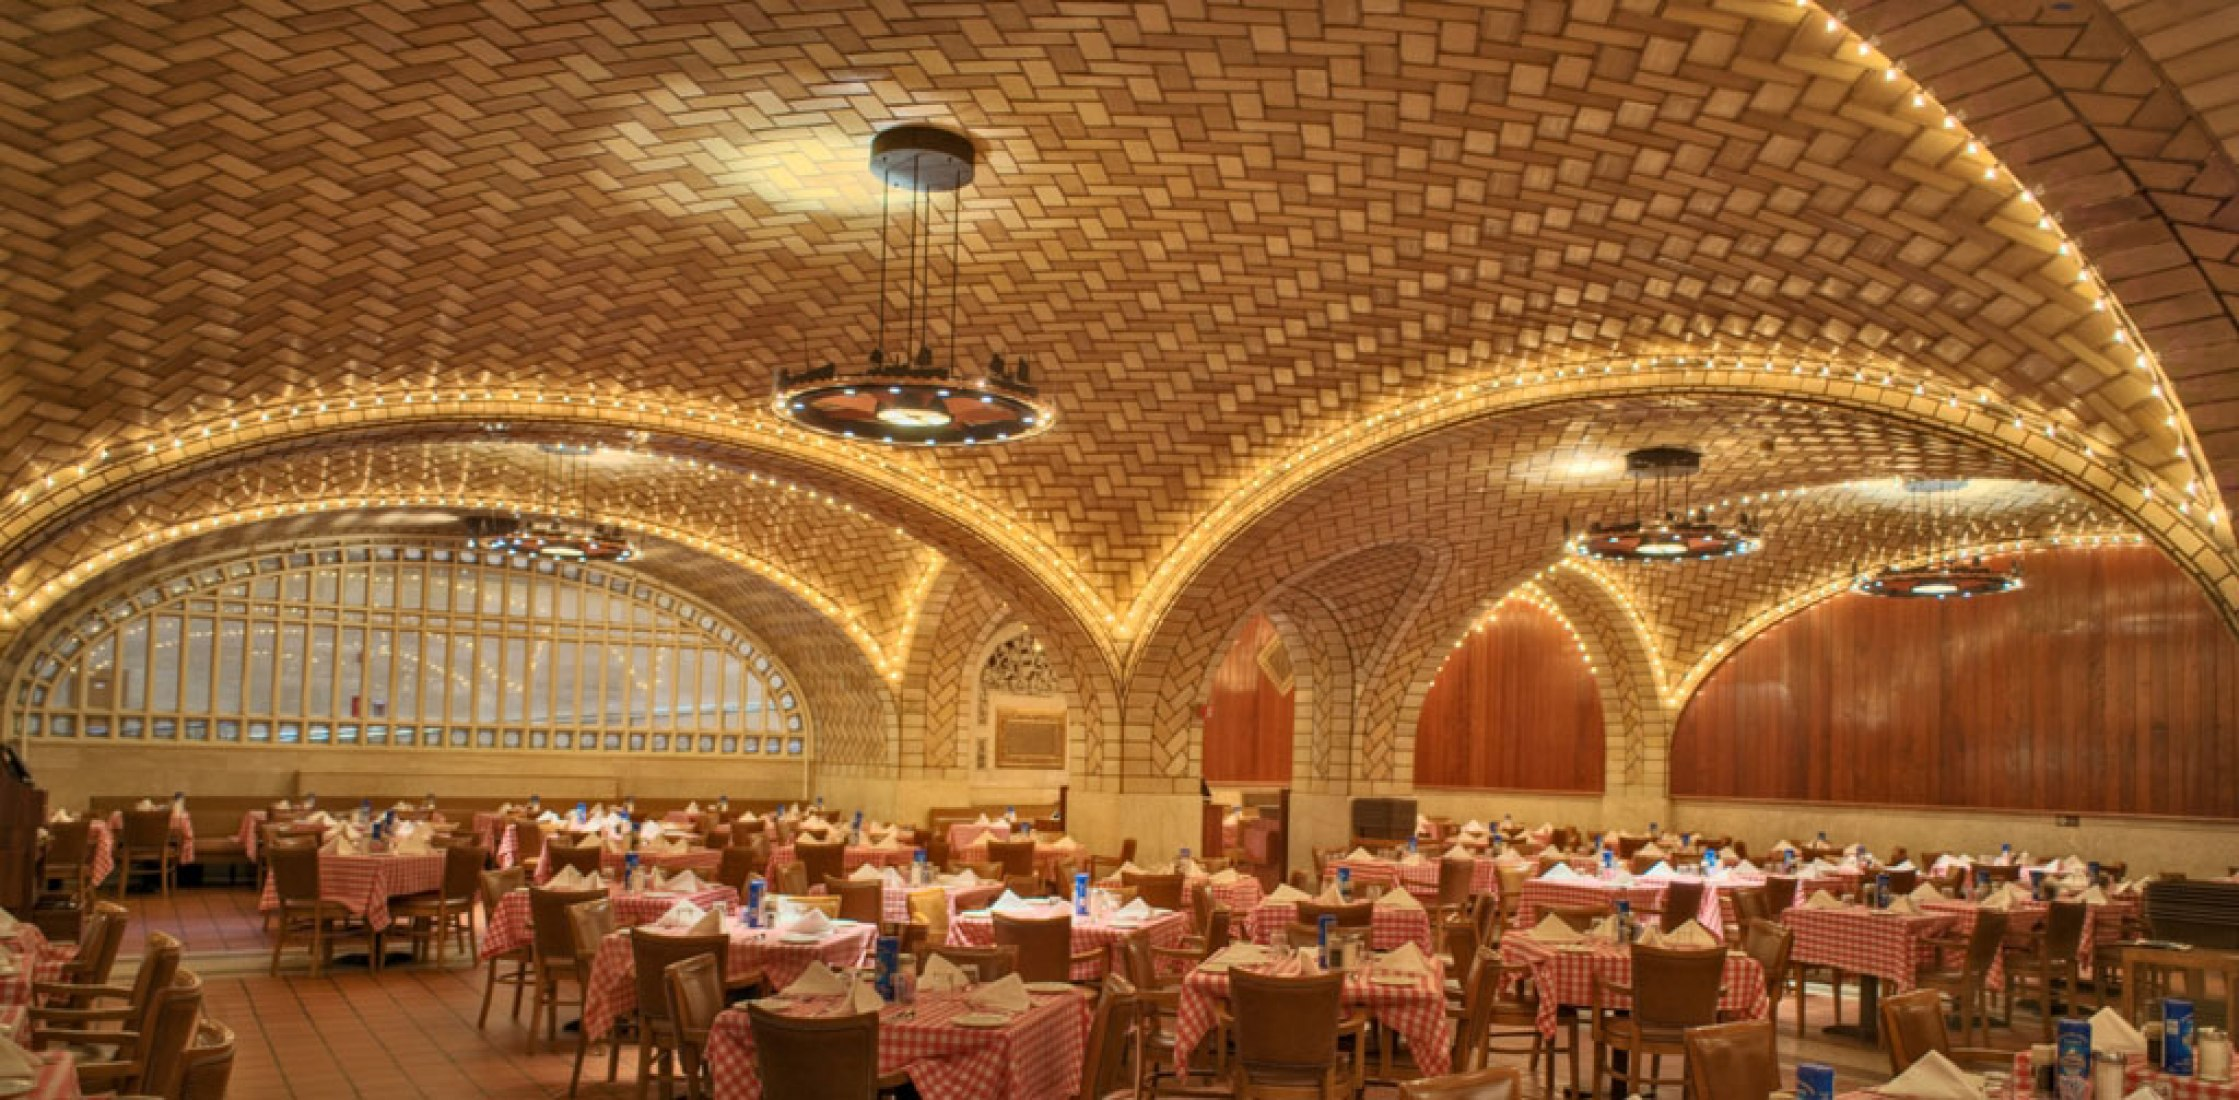 Oyster Bar, Grand Central Terminal. Gustavino Co. para arren & Wetmore, 1912. FotoWgrafía © Michael Freeman.